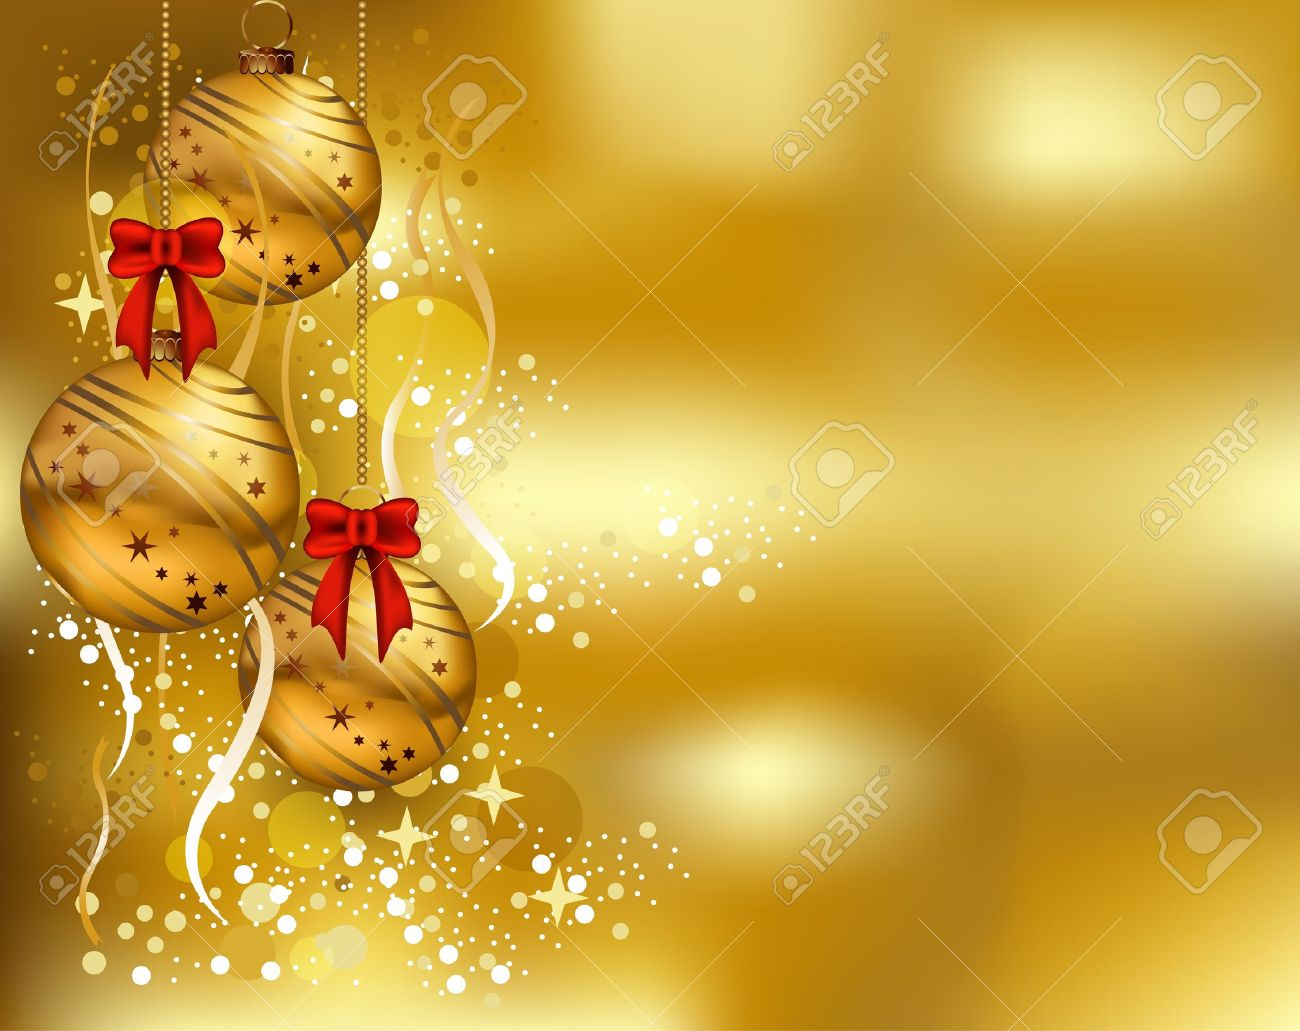 beauty christmas card background with gold color royalty free